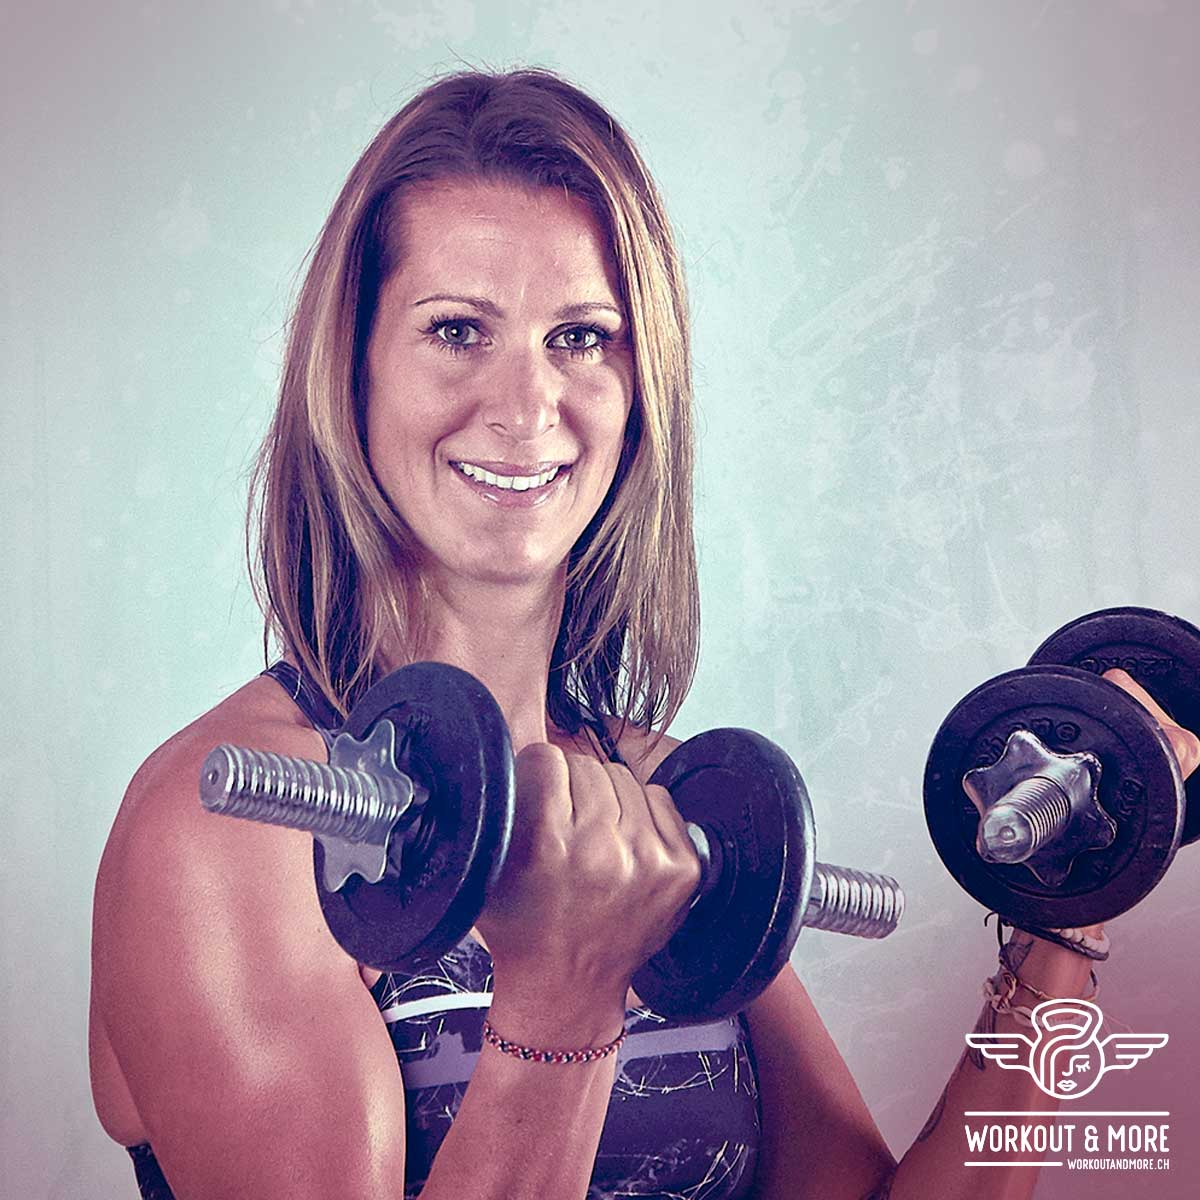 Workout-And-More-Melanie-Walther